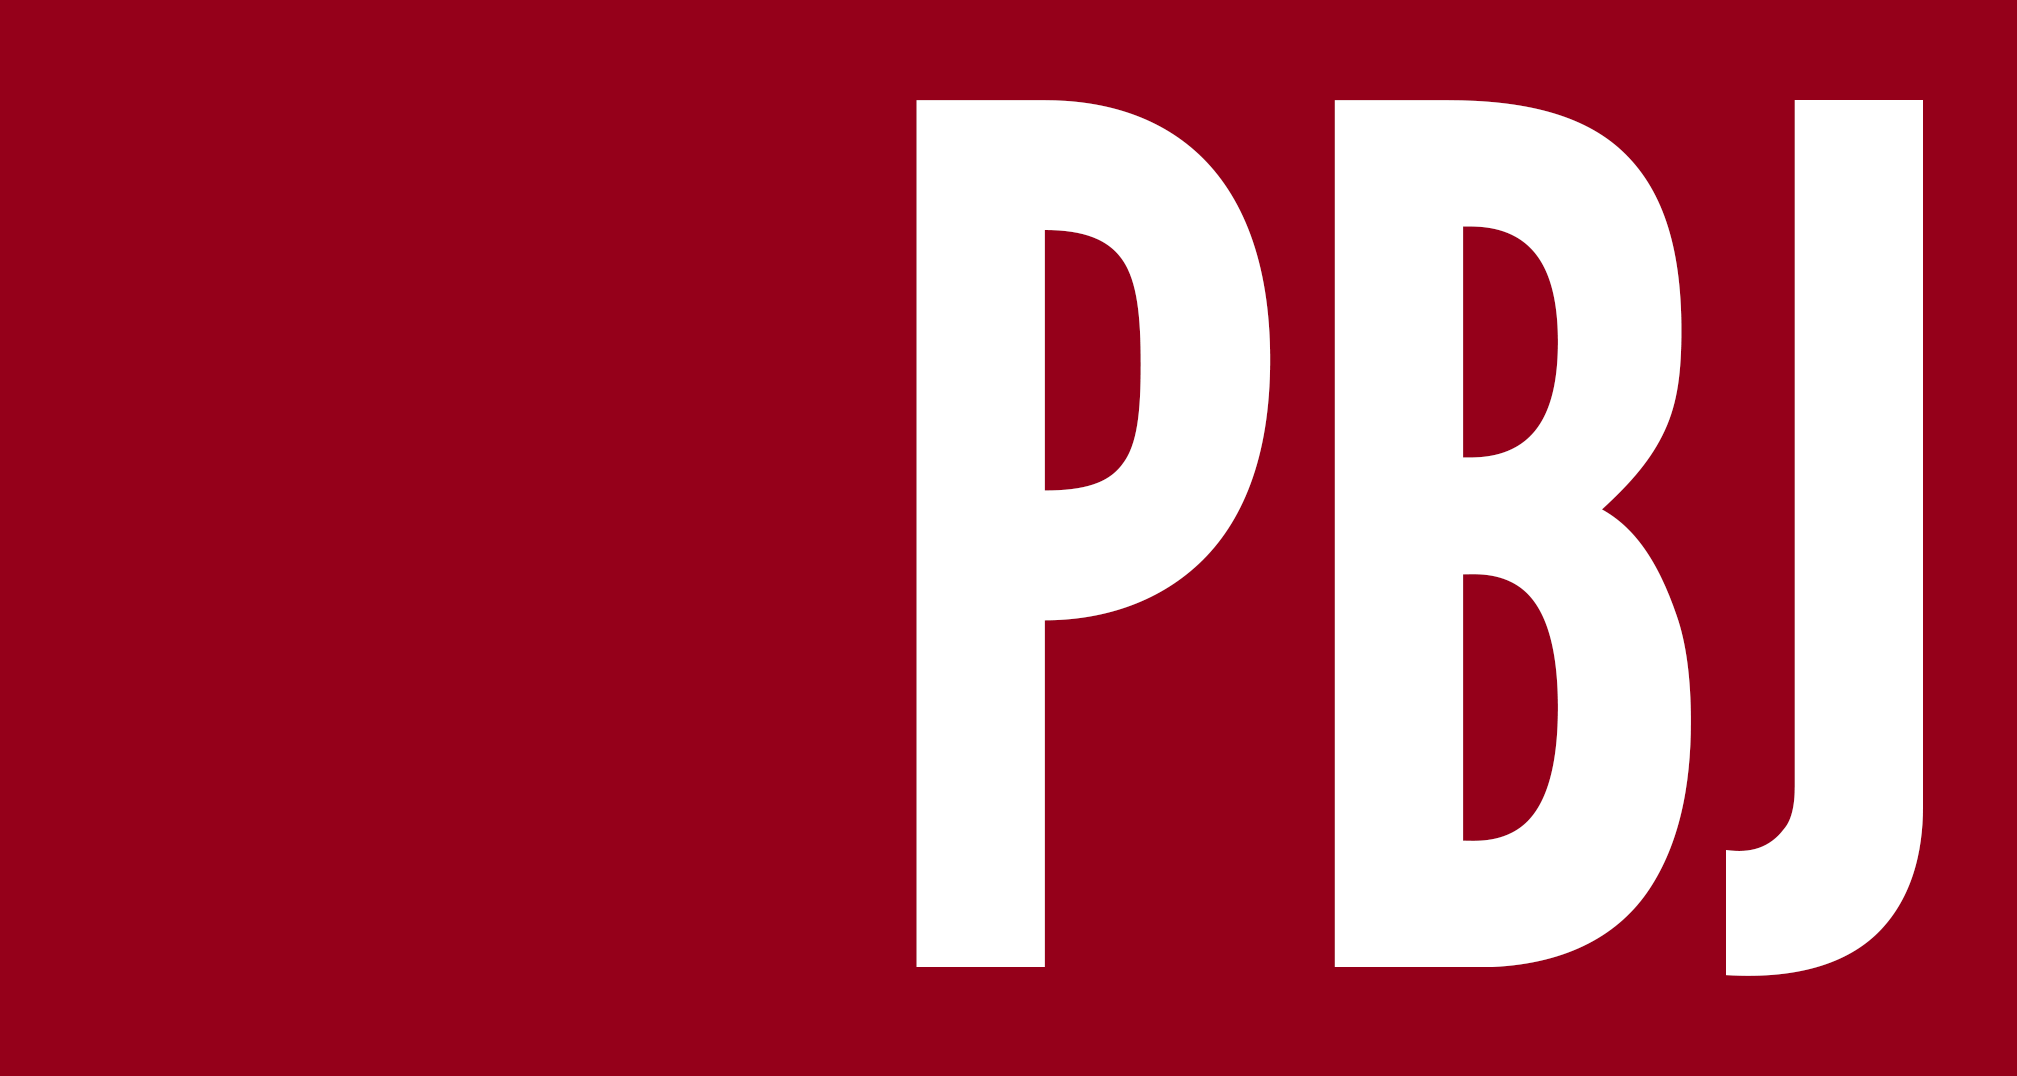 Penn Bioethics Journal Logo